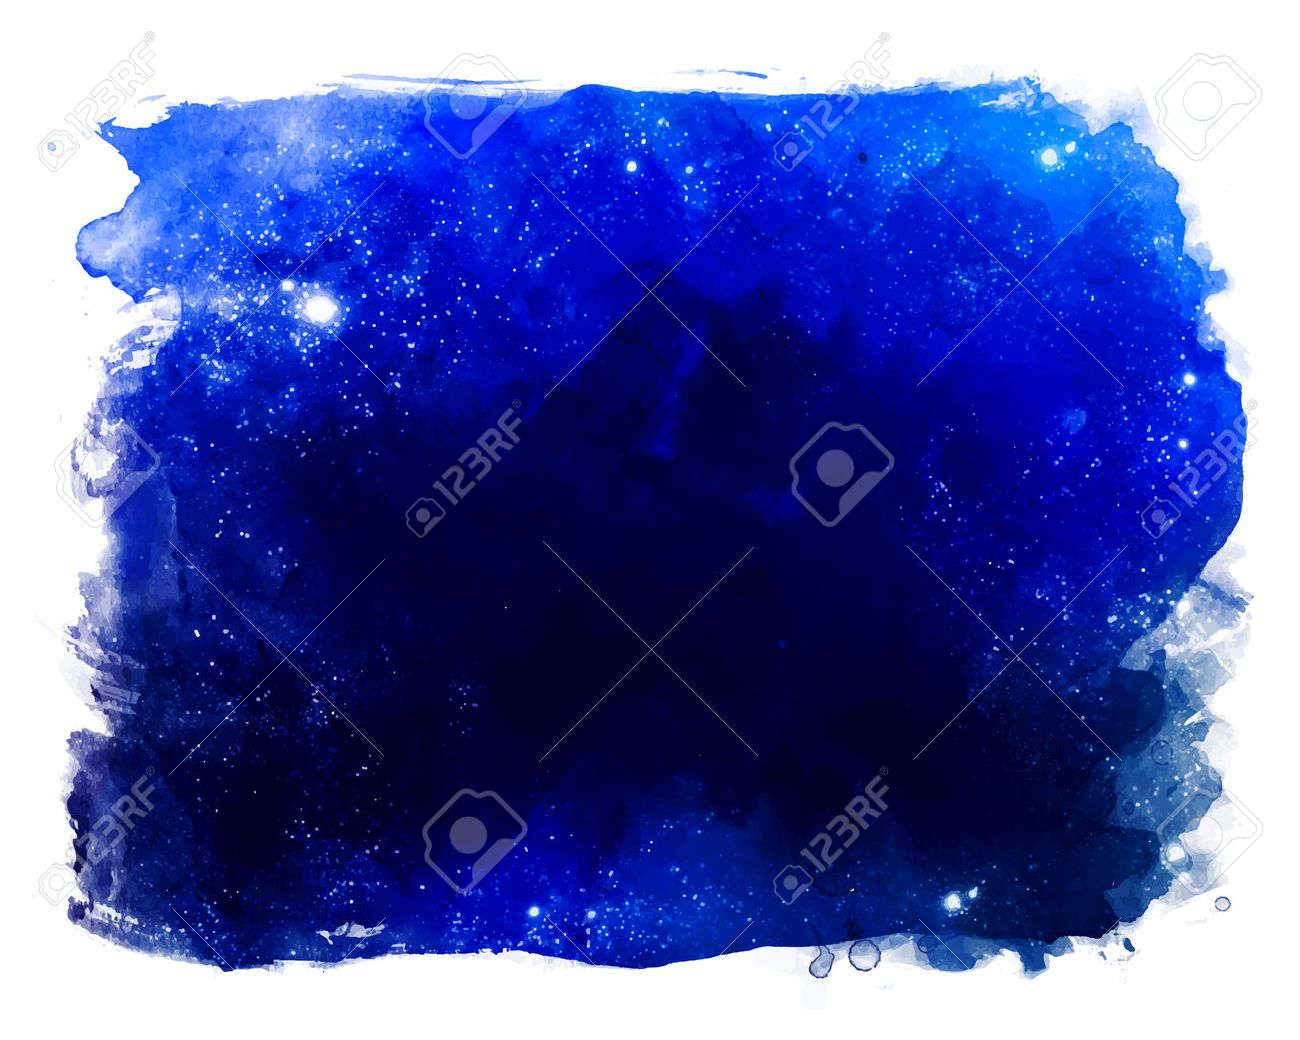 Watercolor space texture with glowing stars. Night starry sky with paint strokes and swashes. - 44358820